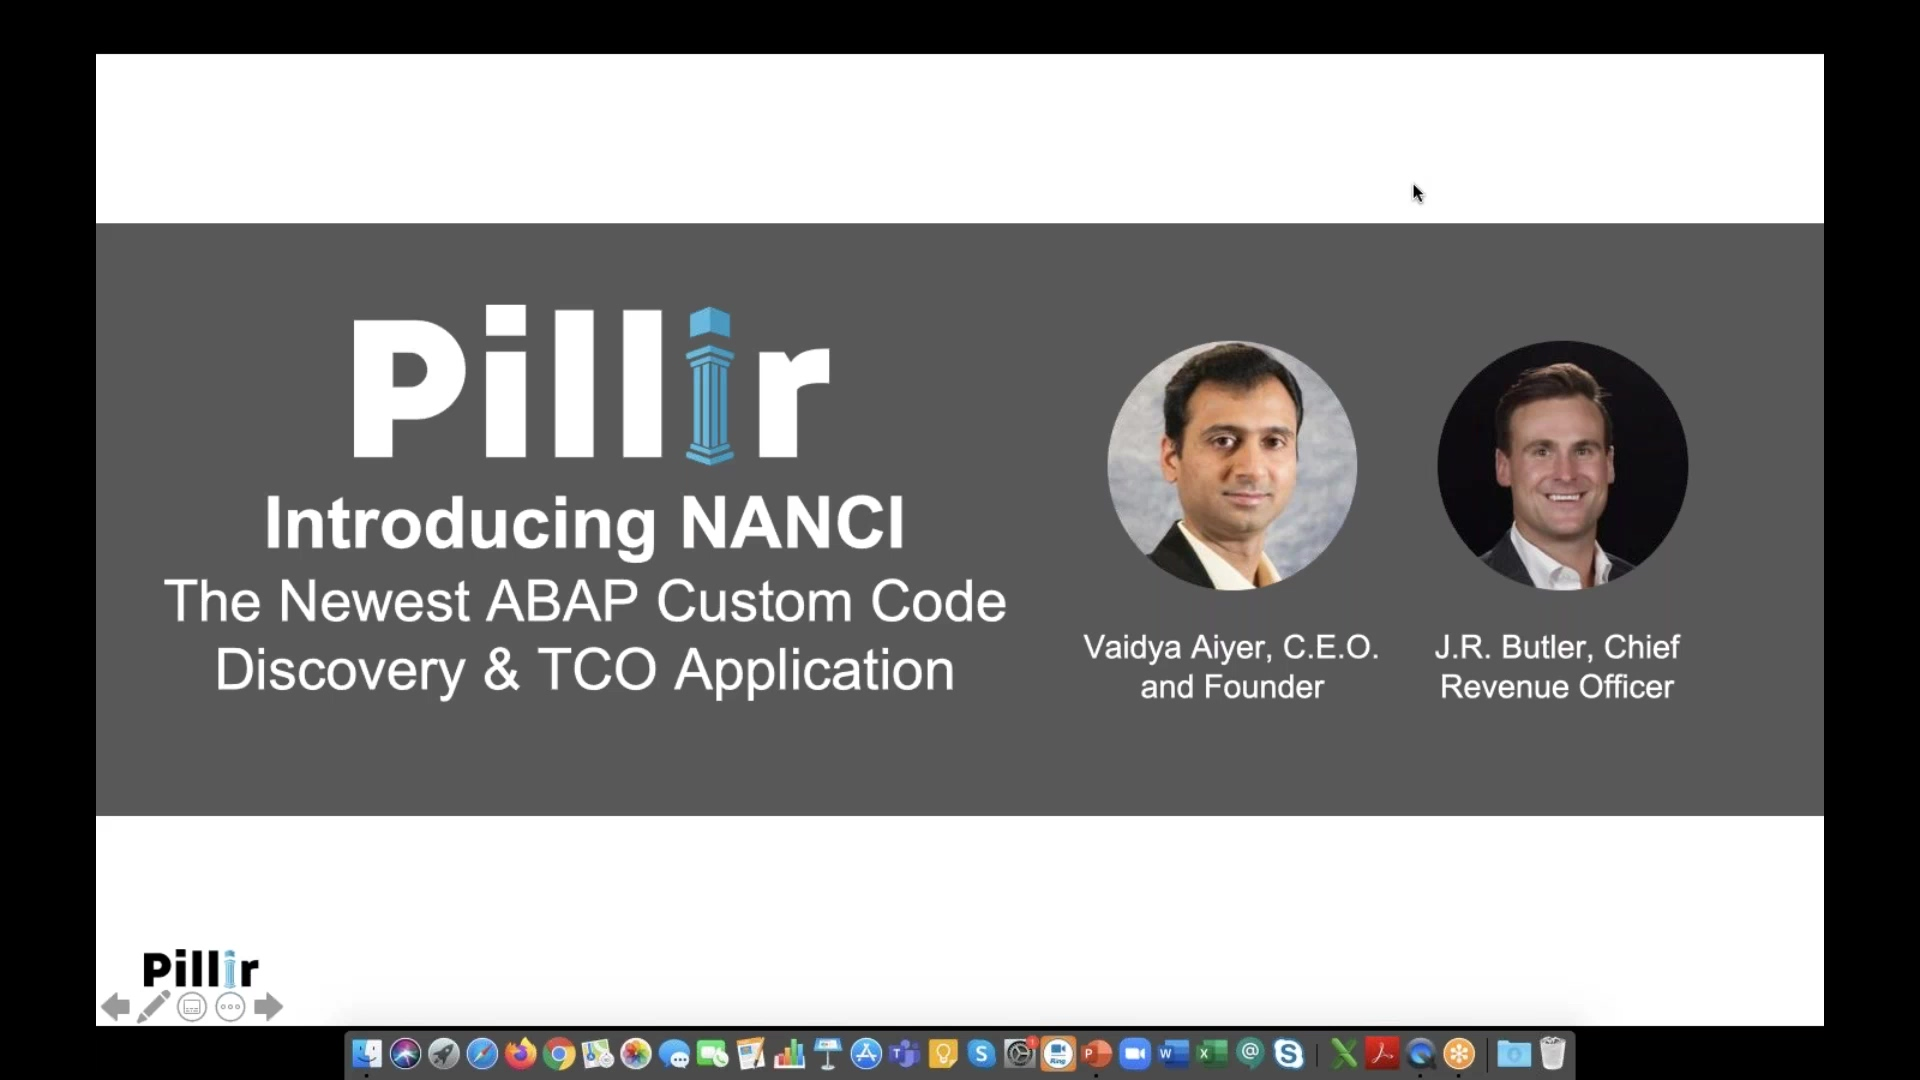 Introducing NANCI – The Newest ABAP Custom Code Discovery & TCO App new